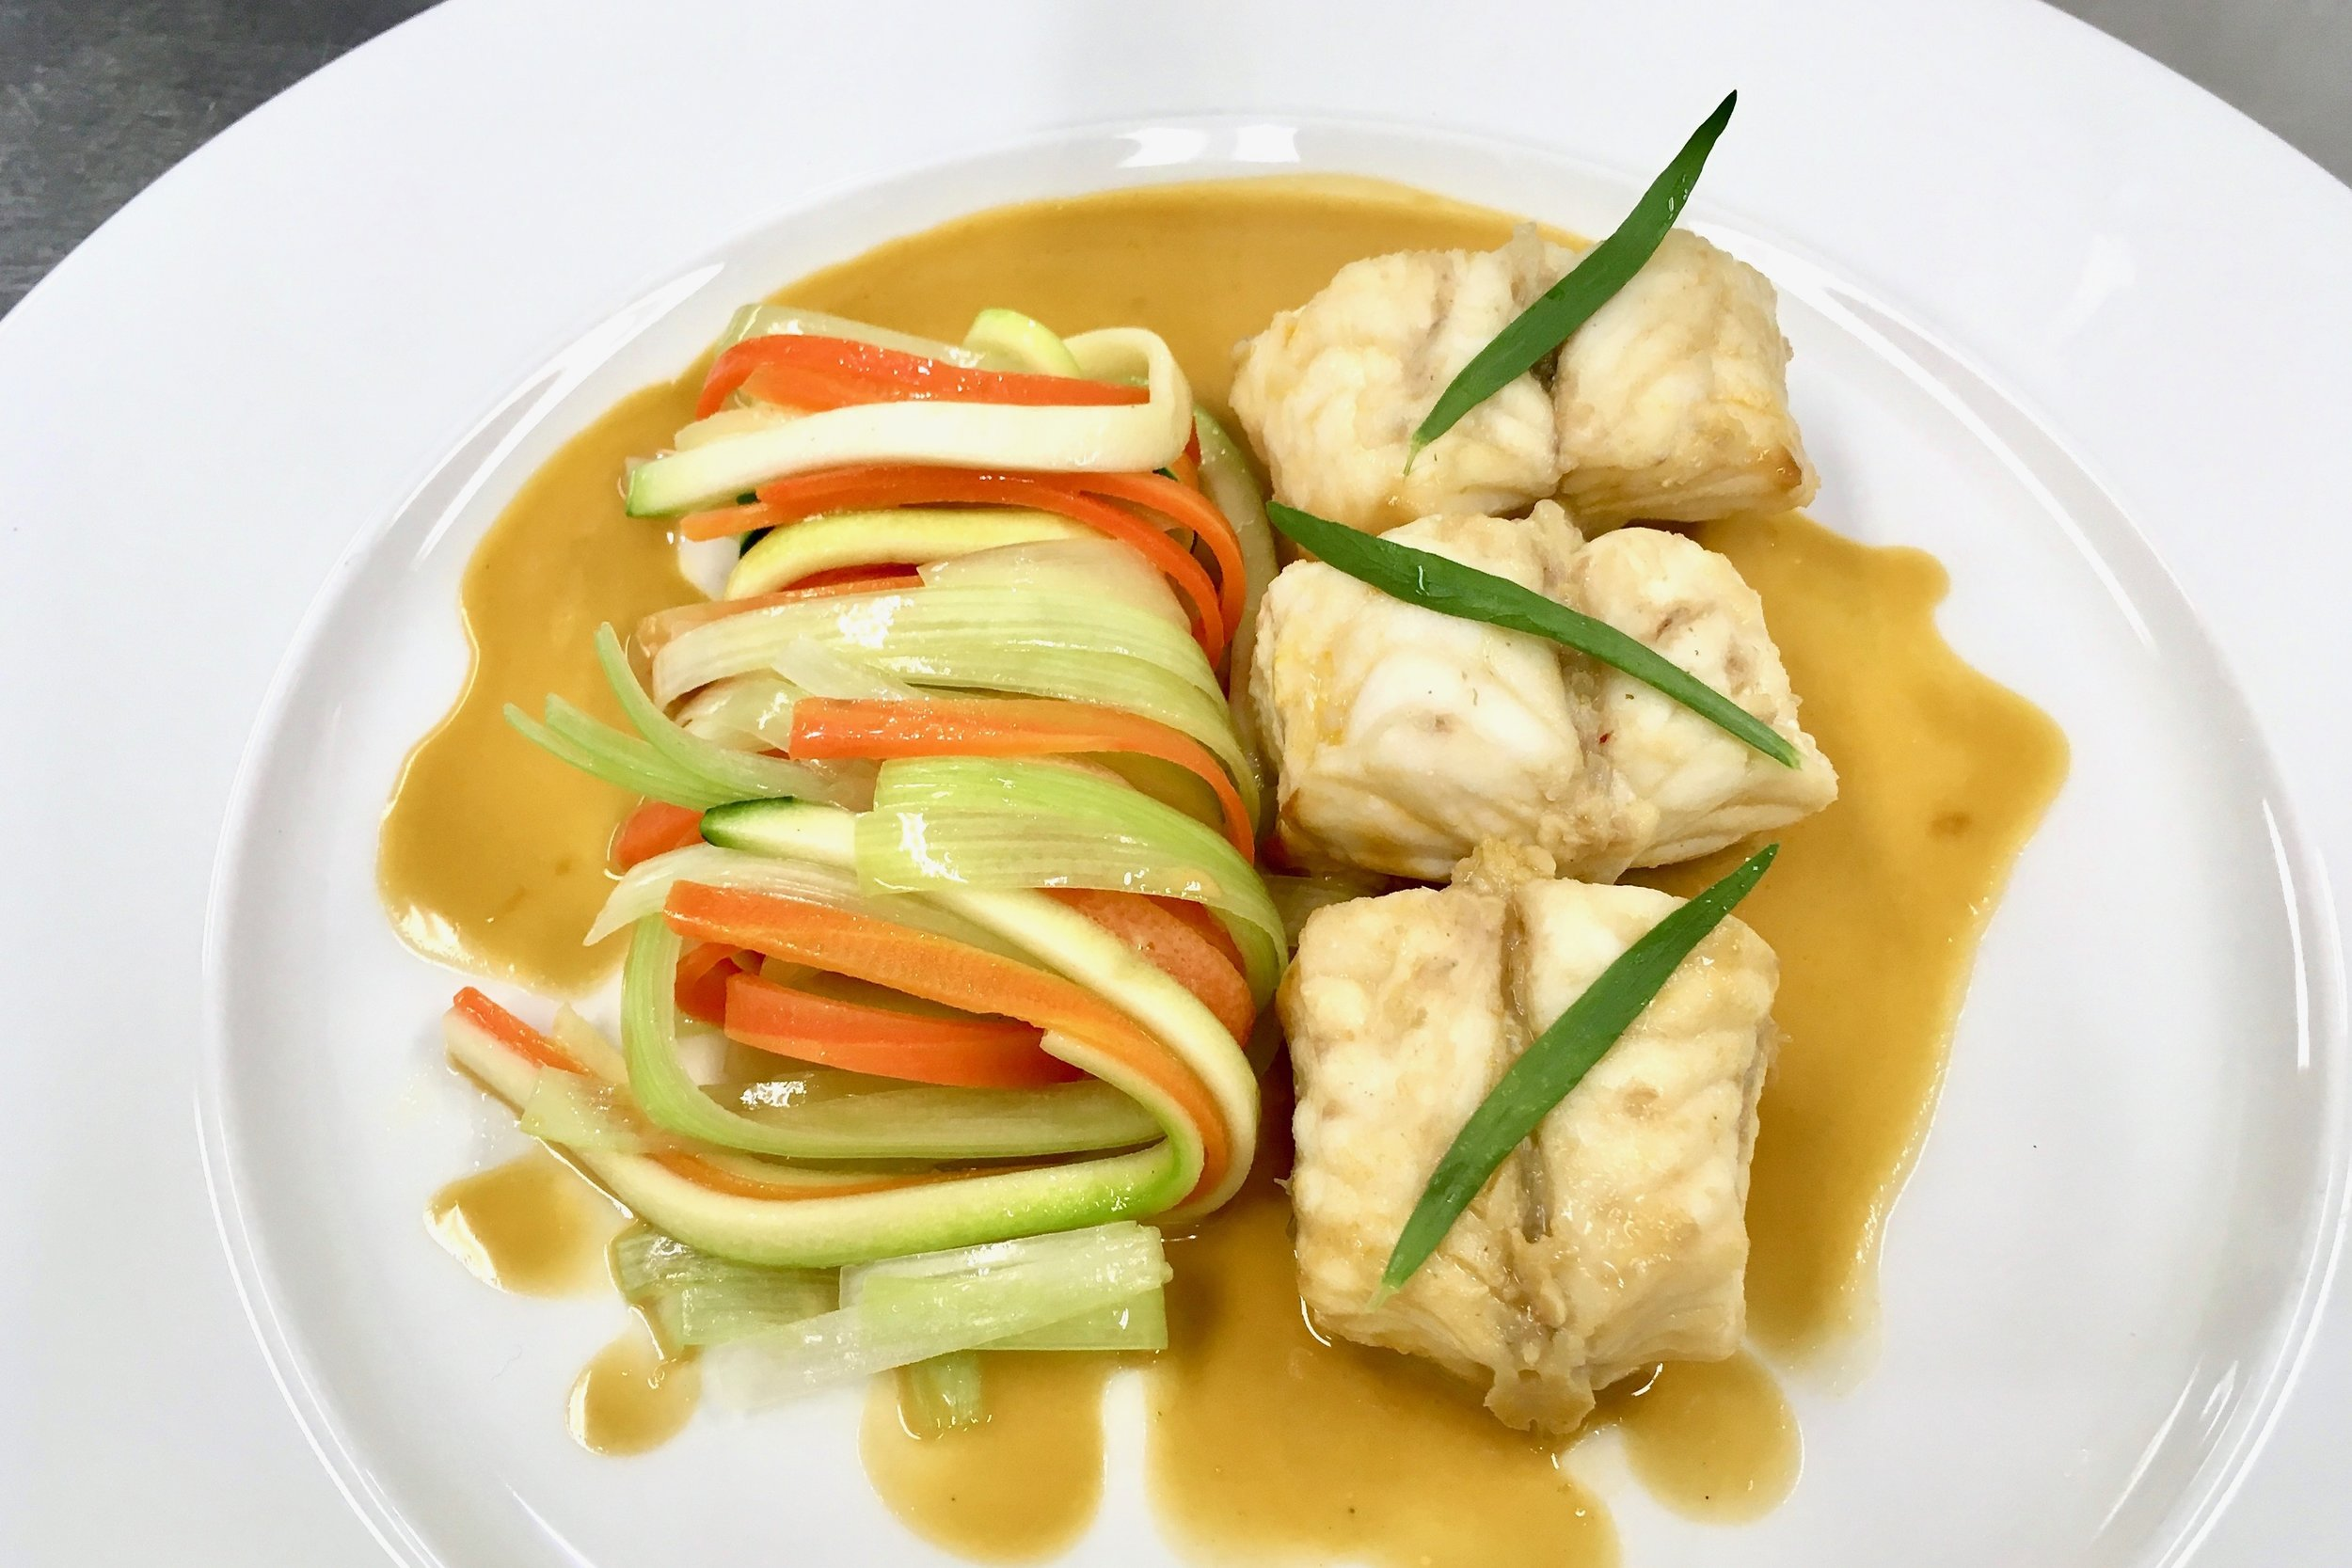 Poached monkfish in a shellfish sauce